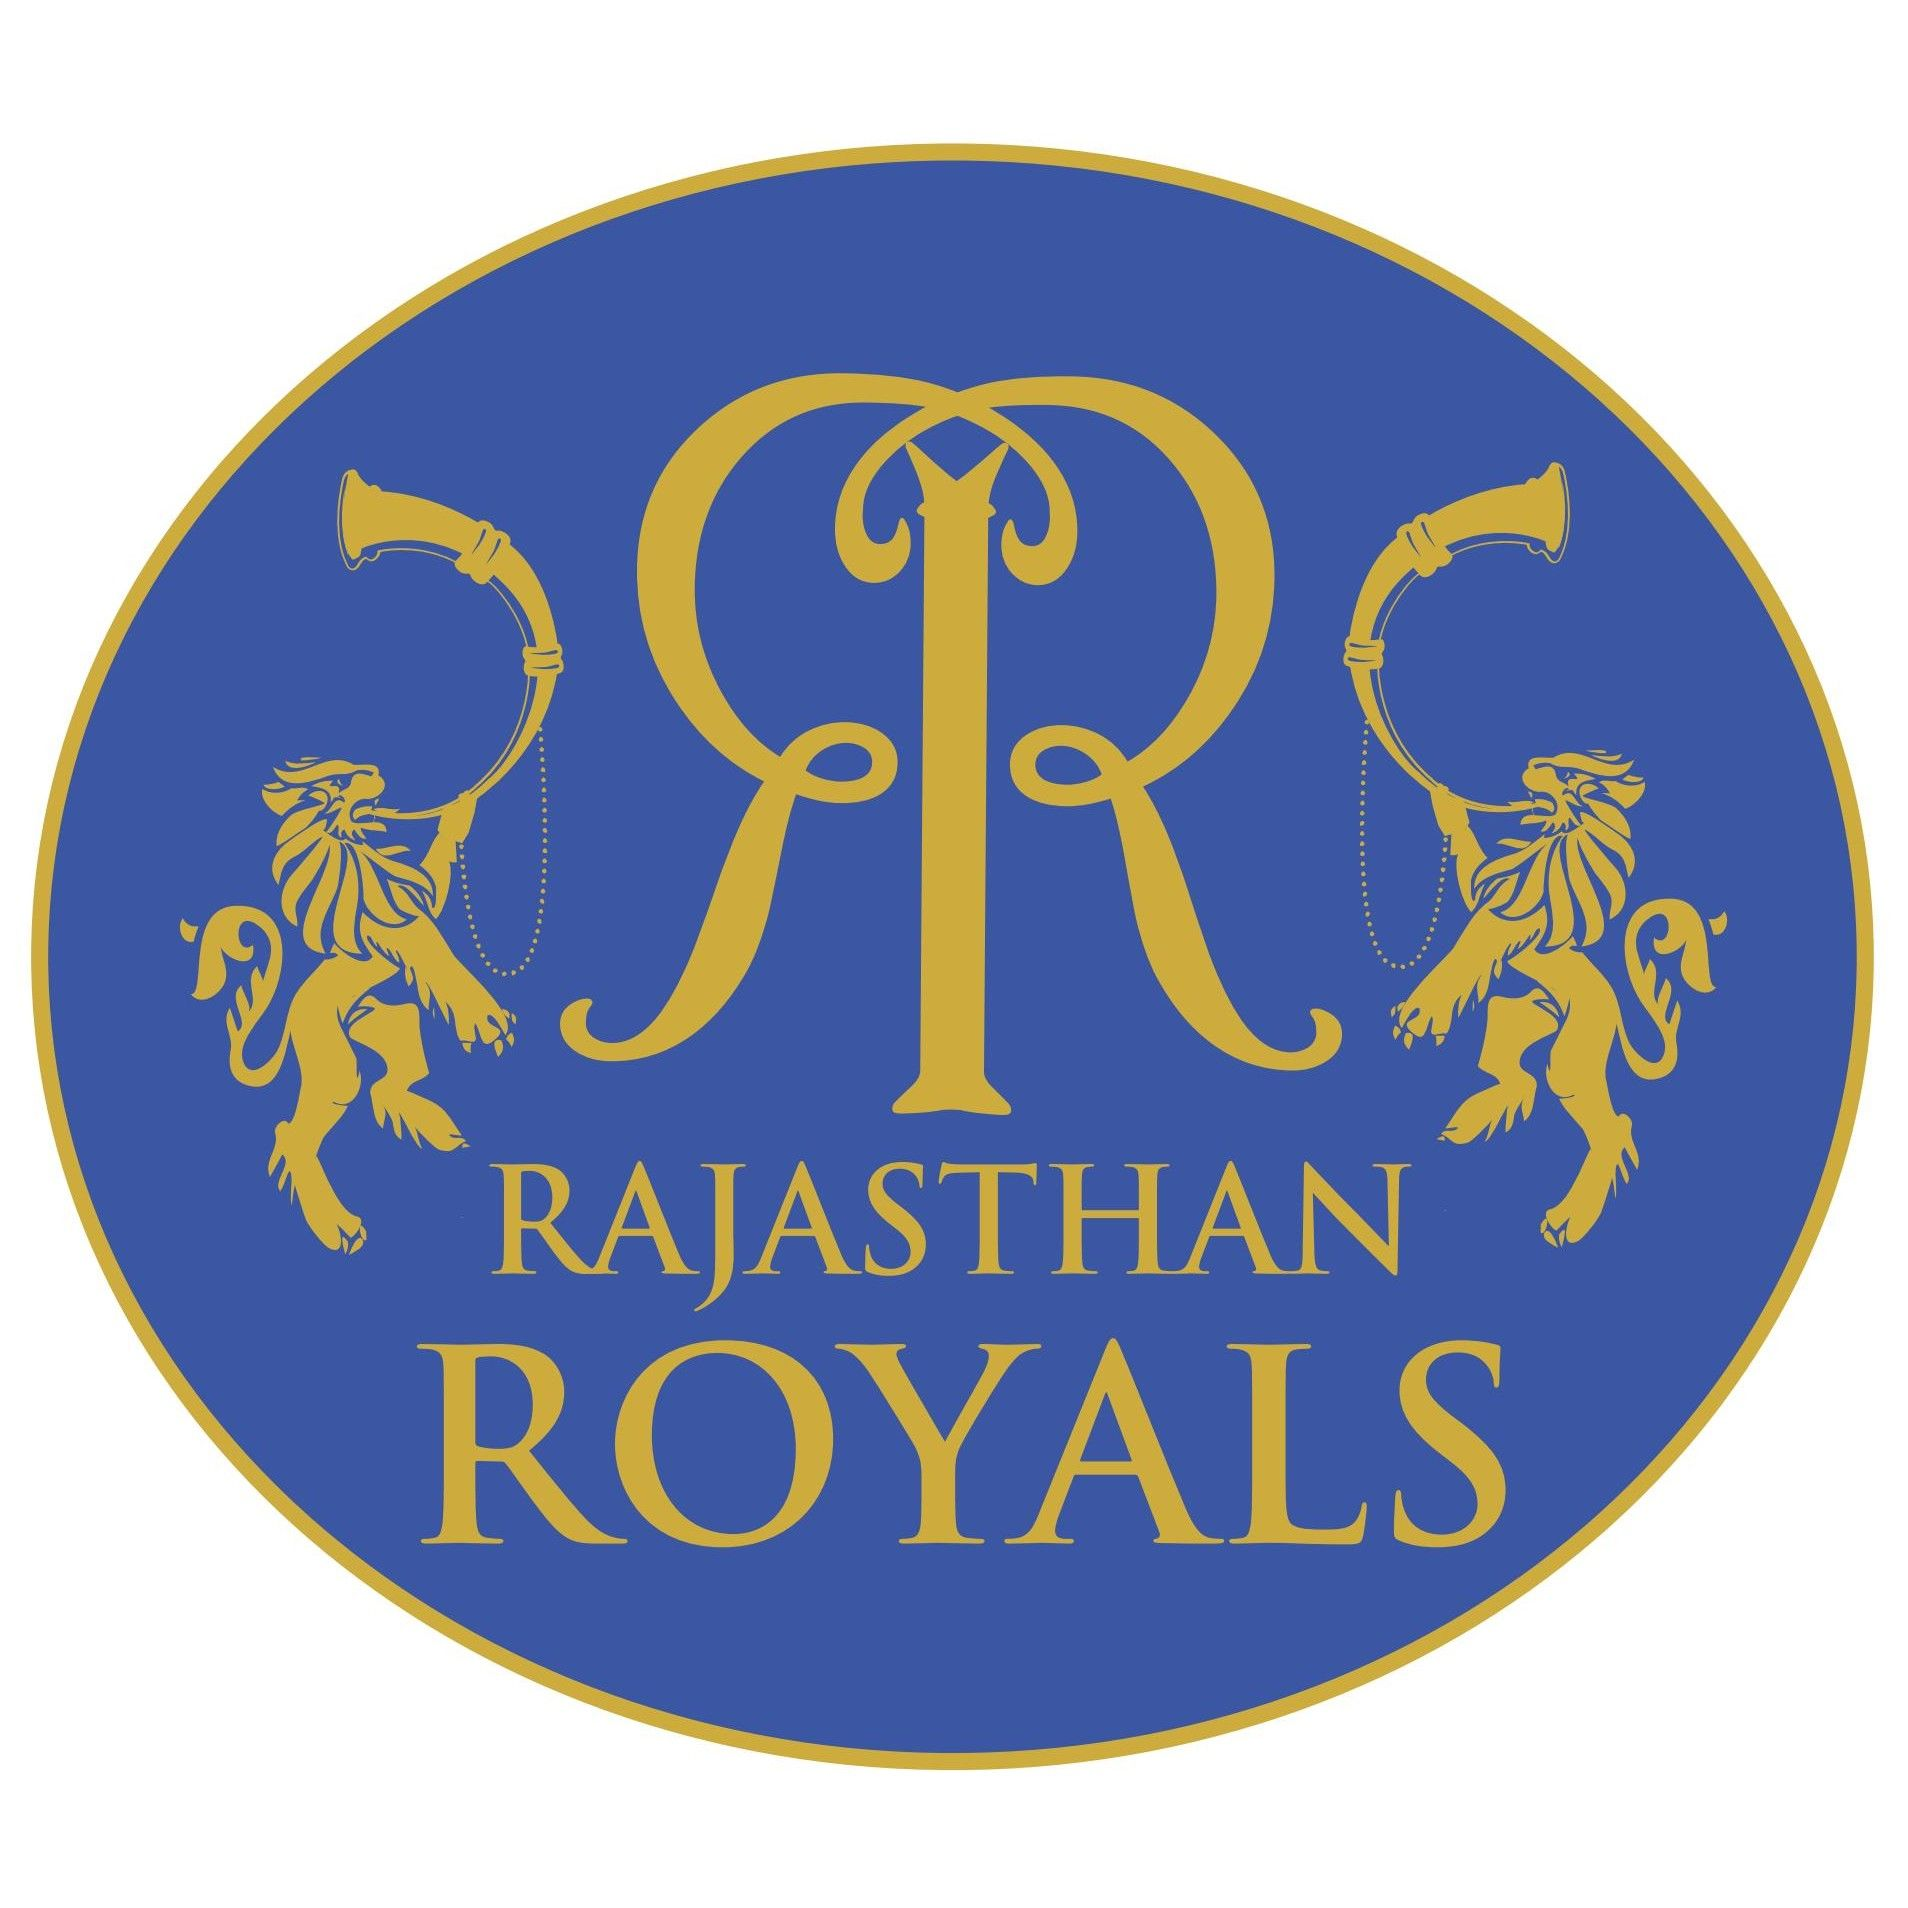 Rajasthan_Royals_Logo Ipl in 2019 Royal logo, Premier